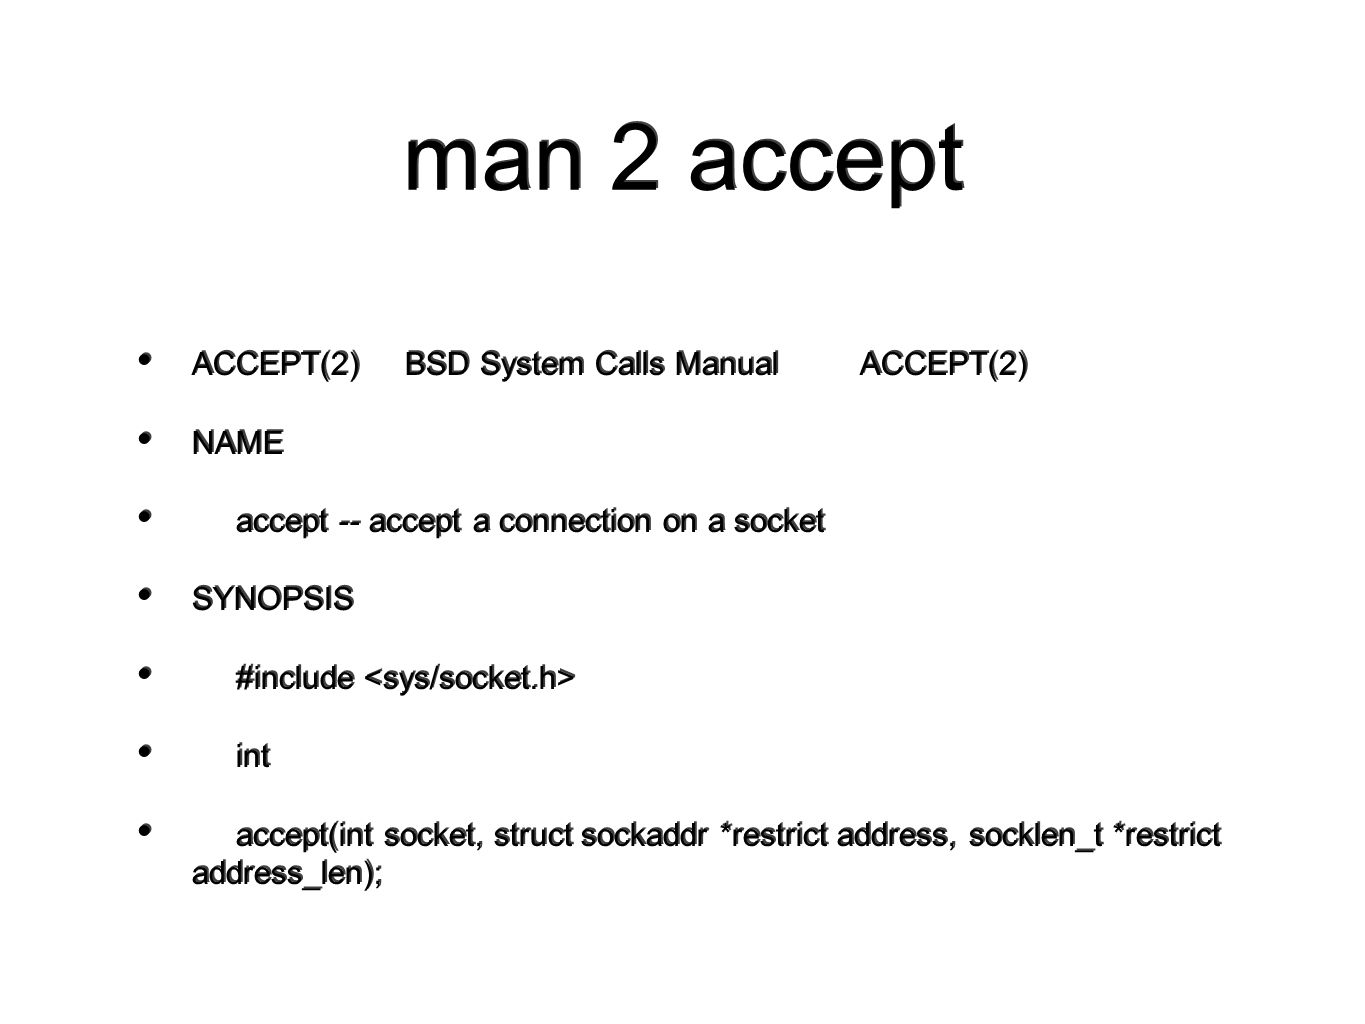 man 2 accept ACCEPT(2) BSD System Calls Manual ACCEPT(2) NAME accept -- accept a connection on a socket SYNOPSIS #include int accept(int socket, struct sockaddr *restrict address, socklen_t *restrict address_len); ACCEPT(2) BSD System Calls Manual ACCEPT(2) NAME accept -- accept a connection on a socket SYNOPSIS #include int accept(int socket, struct sockaddr *restrict address, socklen_t *restrict address_len);